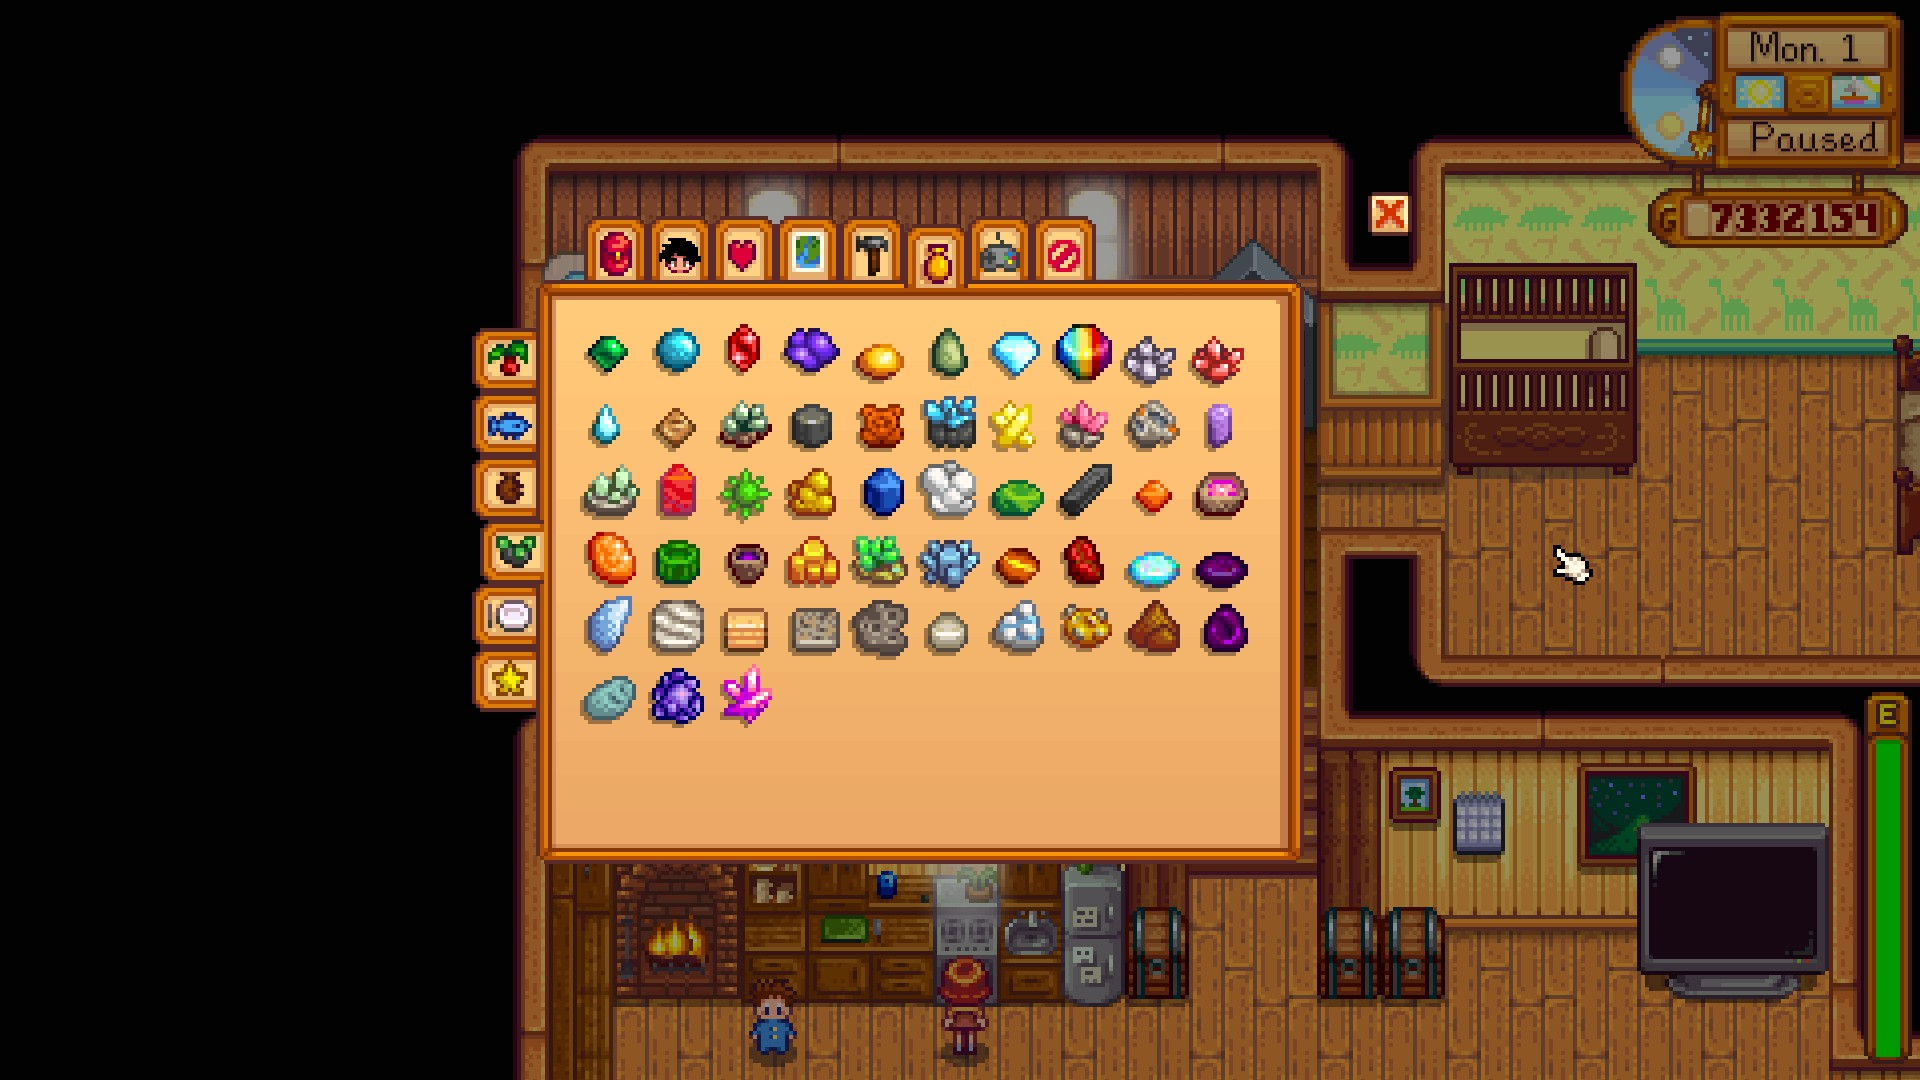 Stardew valley achievement guide nerdburglars gaming for How to fish in stardew valley ps4